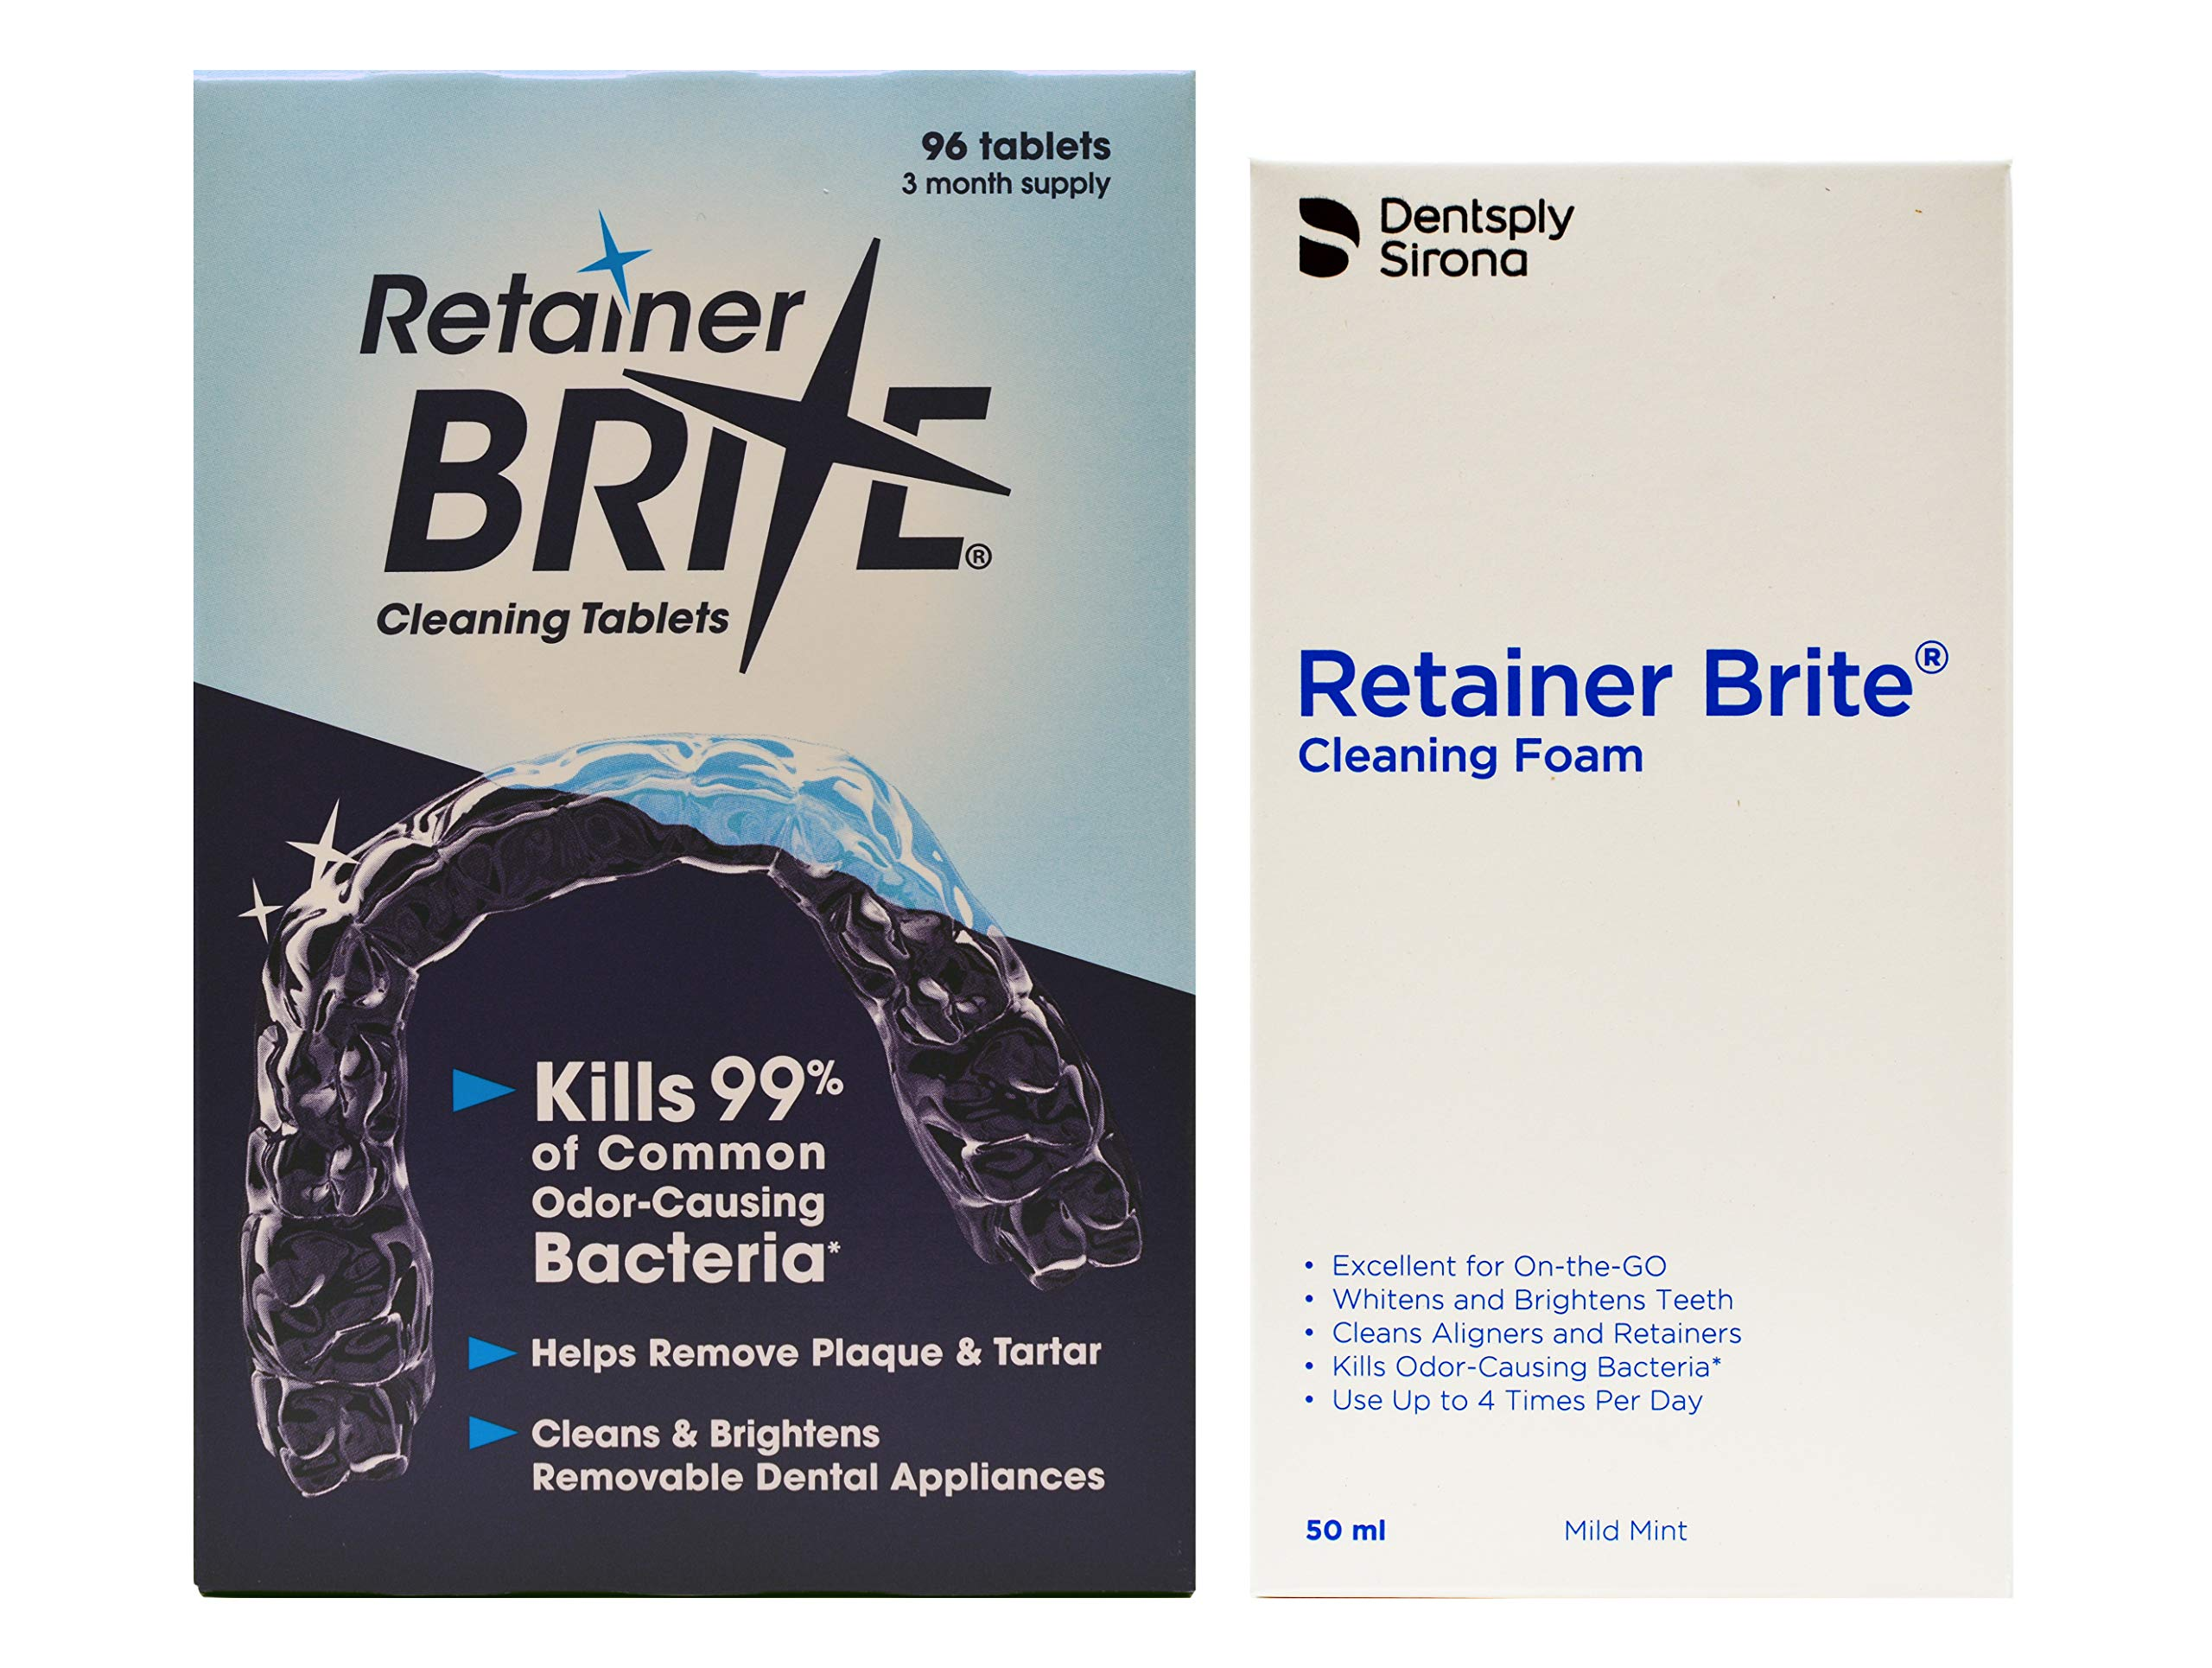 Retainer Brite 96 Tablets (3 Months Supply) and Retainer Brite Cleaning Foam (50 ml Bottle)